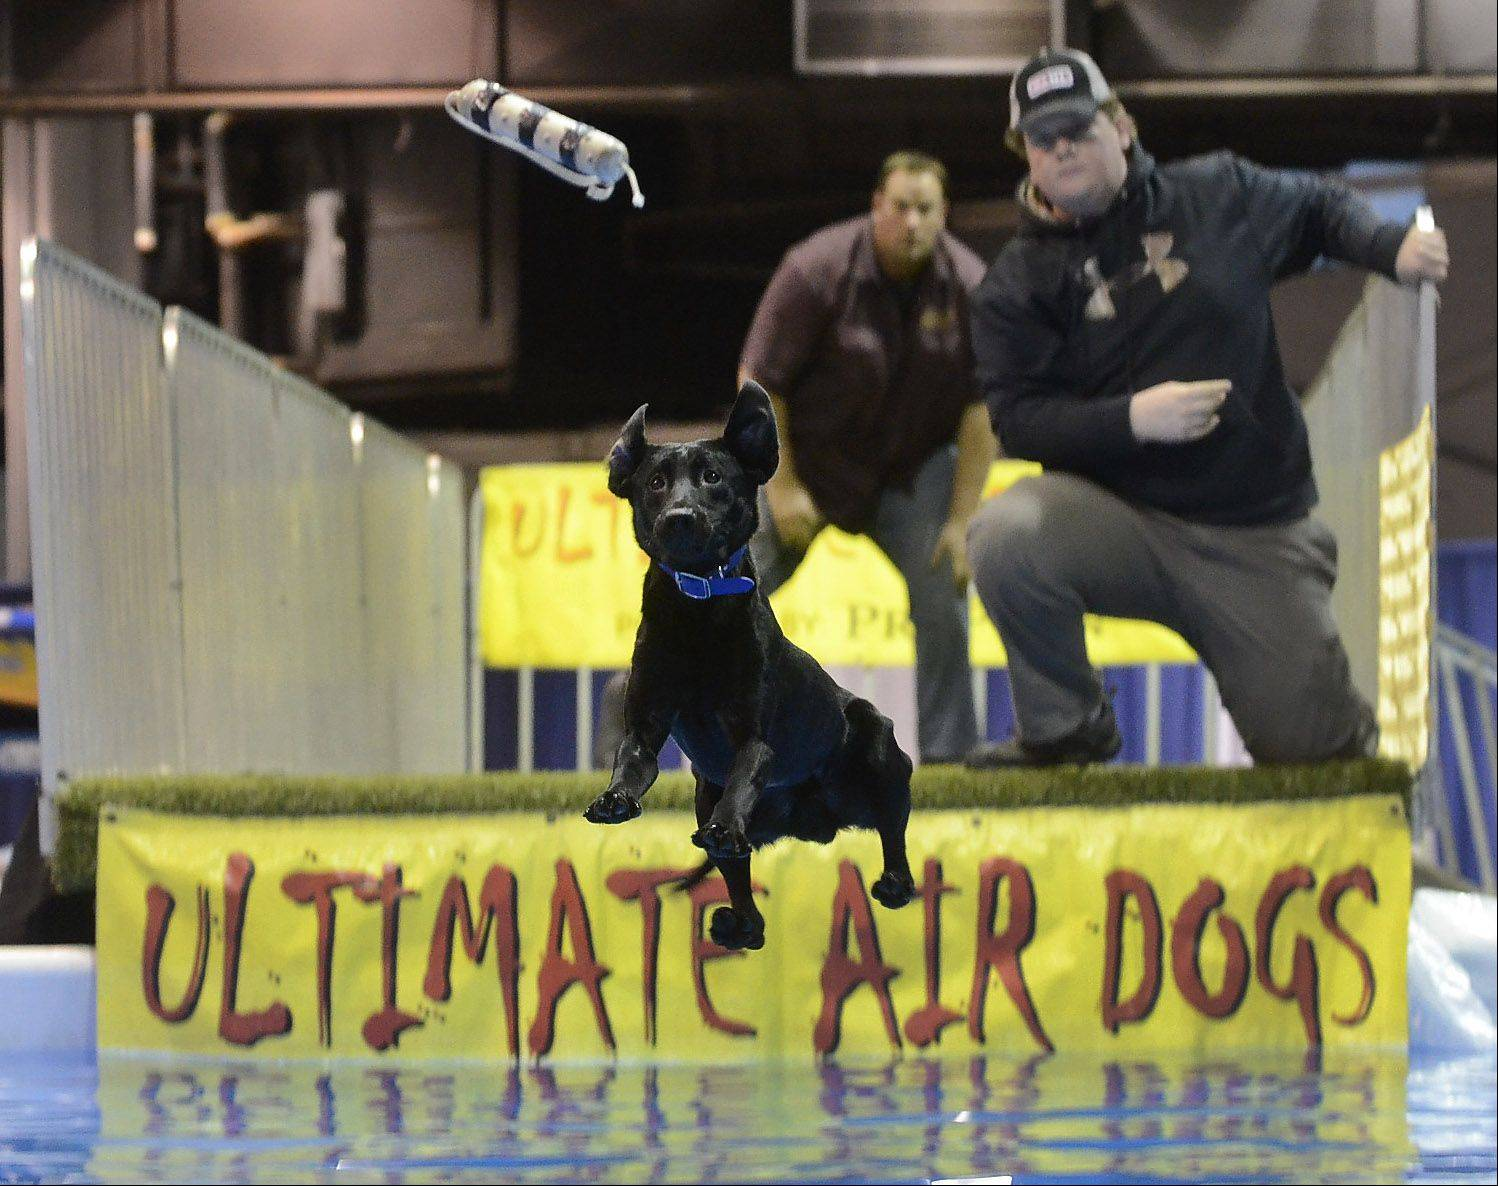 Ice, a black lab, goes airborne as part of an exhibition Friday by Ultimate Air Dogs at the 28th Annual Chicago Outdoor Sports Show at the Donald E. Stephens Convention Center in Rosemont. Ice's owner, Brian Butler, is on the right.